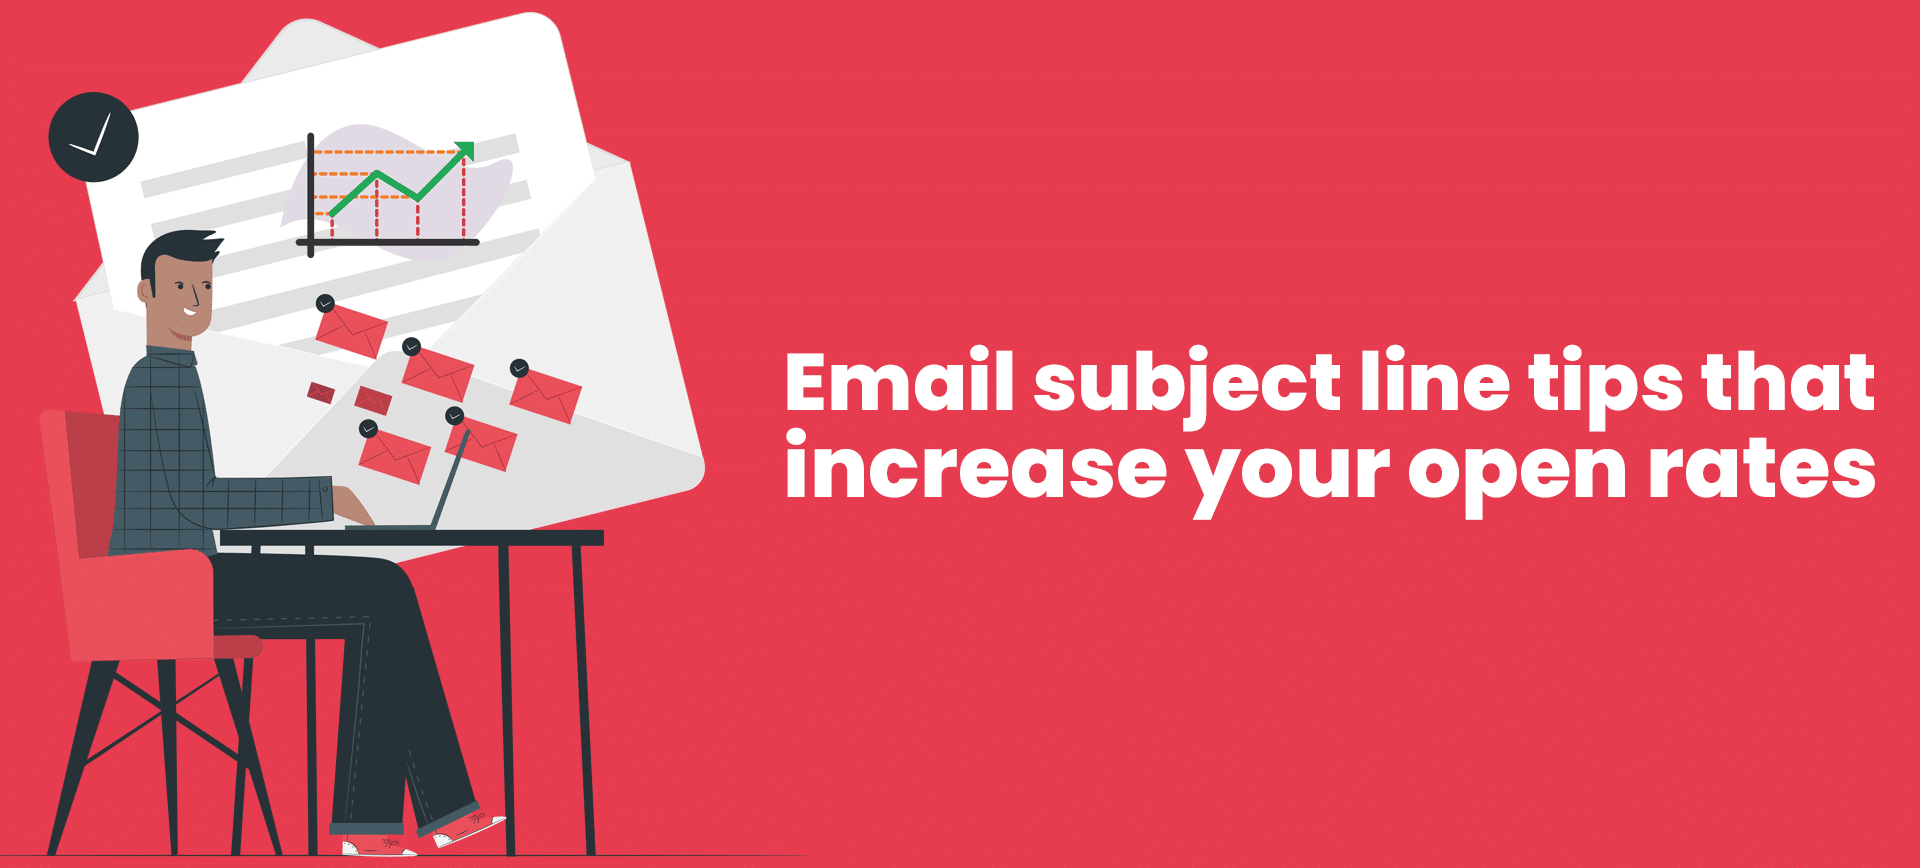 Email Subject Line Tips That Increase Your Open Rates